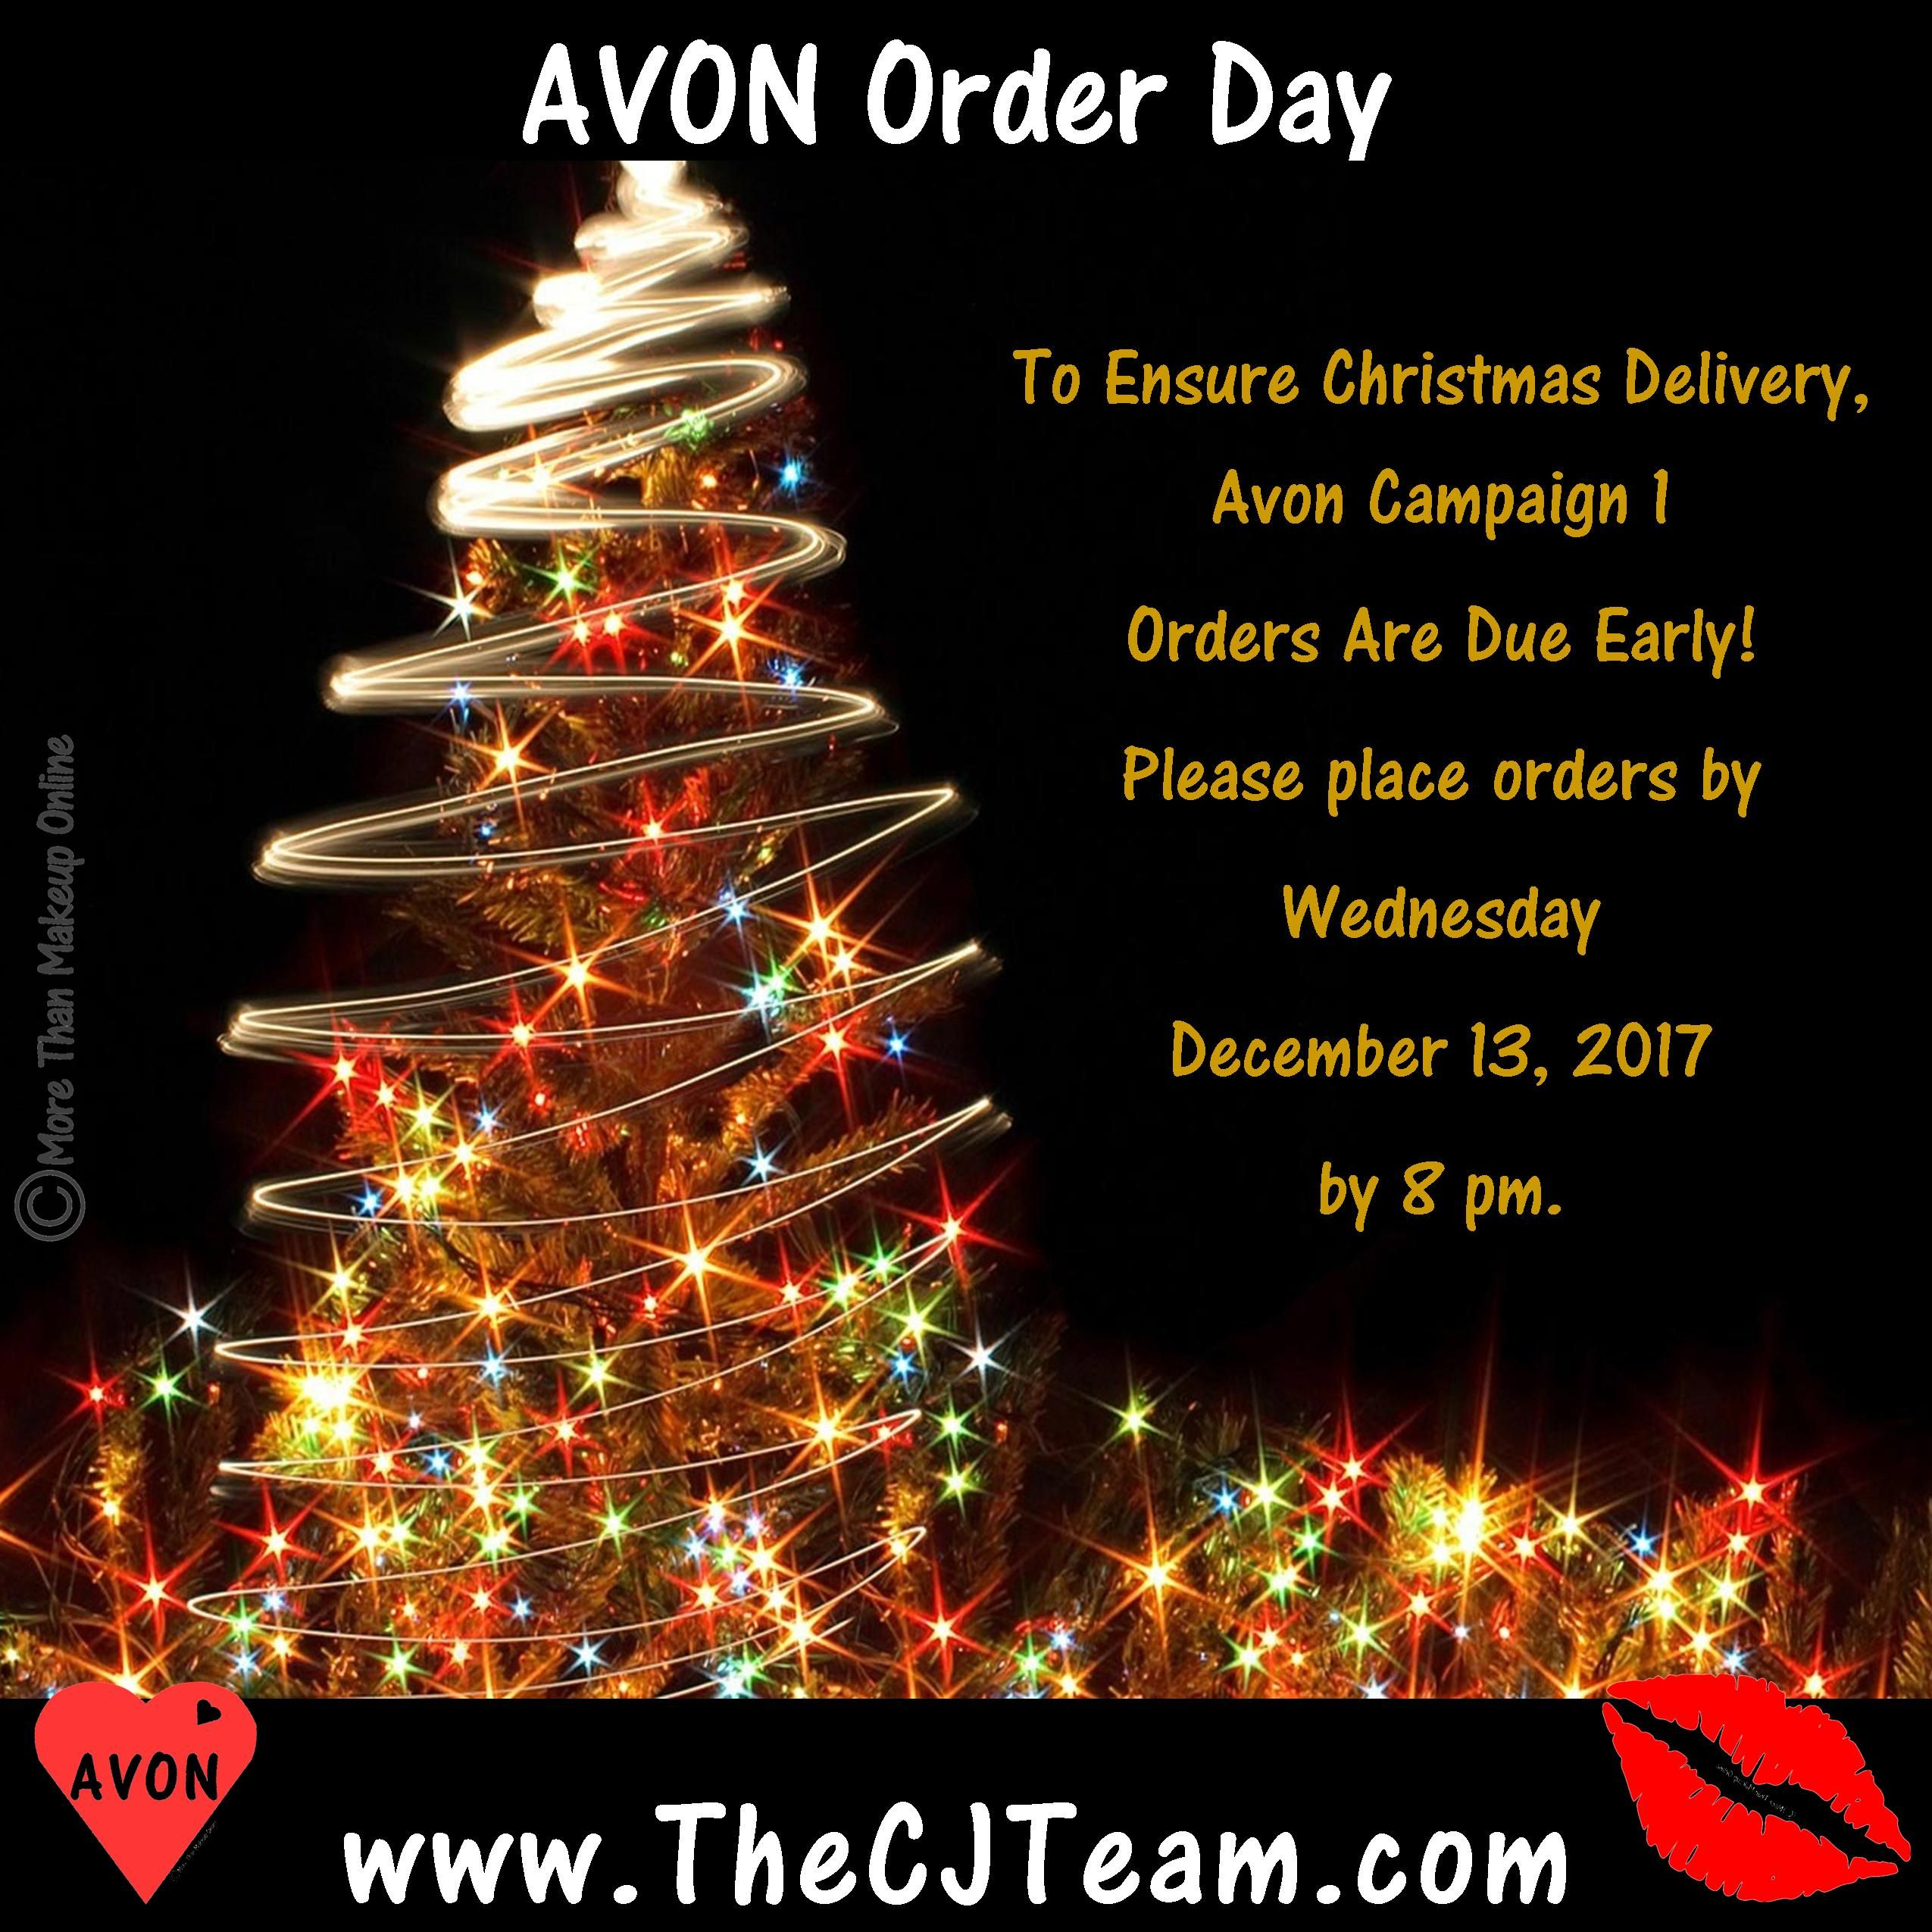 Anything Open On Christmas Day.Today Last Day To Order From Avon Campaign 1 In Time For